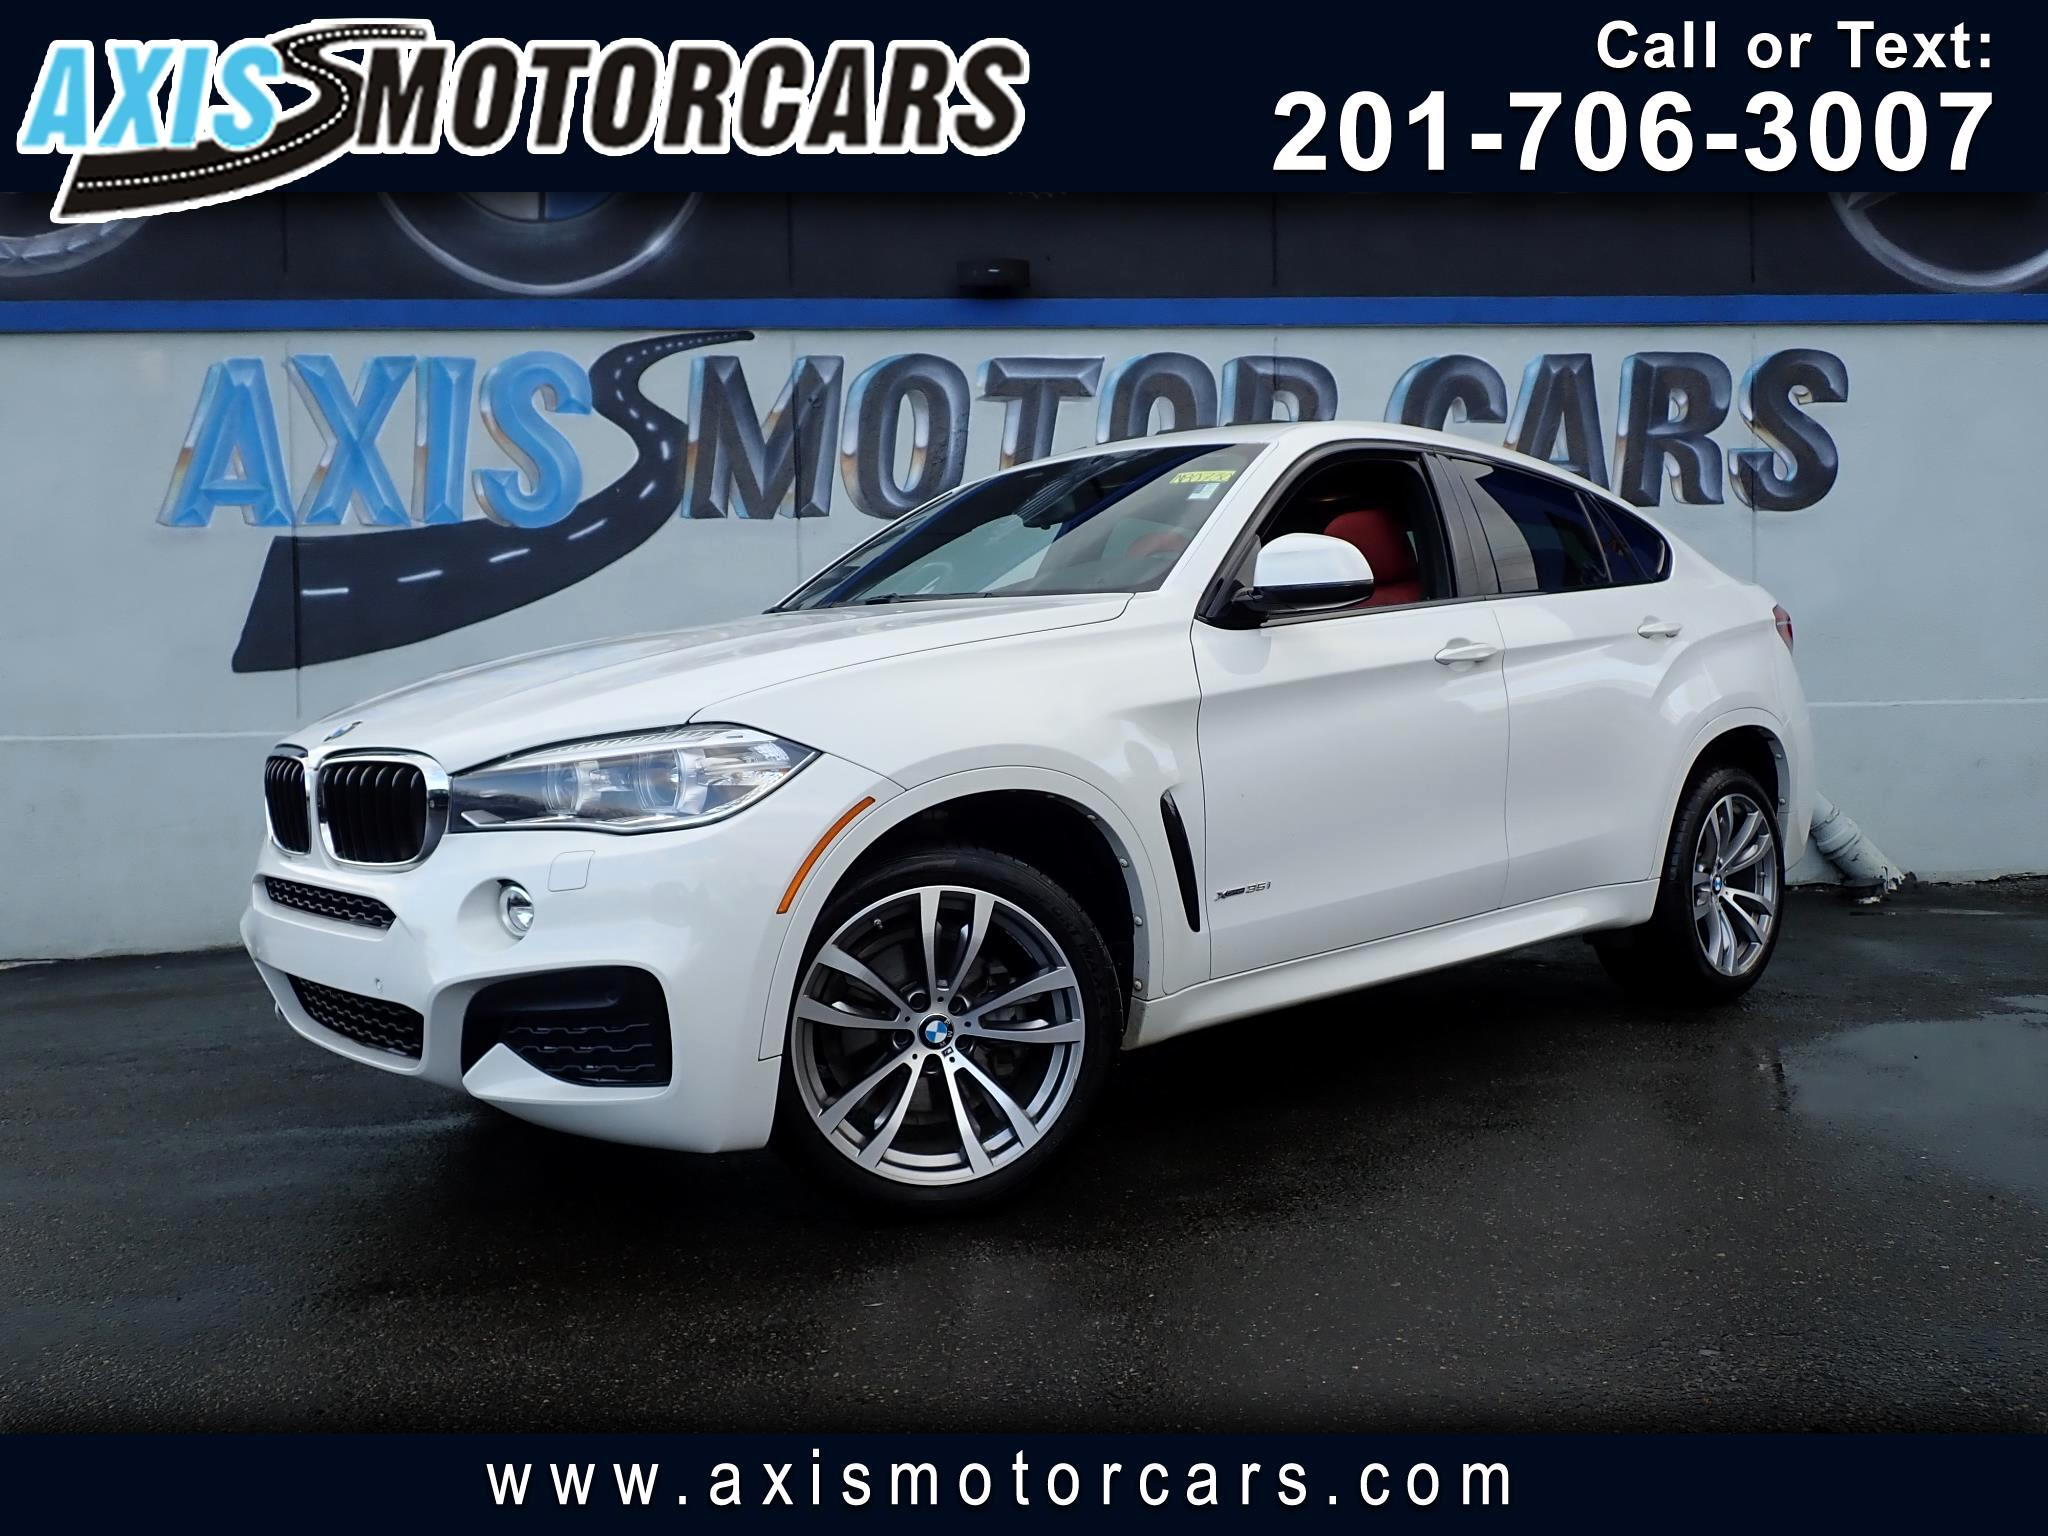 2016 BMW X6 pkg w/Navigation Drivers Assist Sun Roof